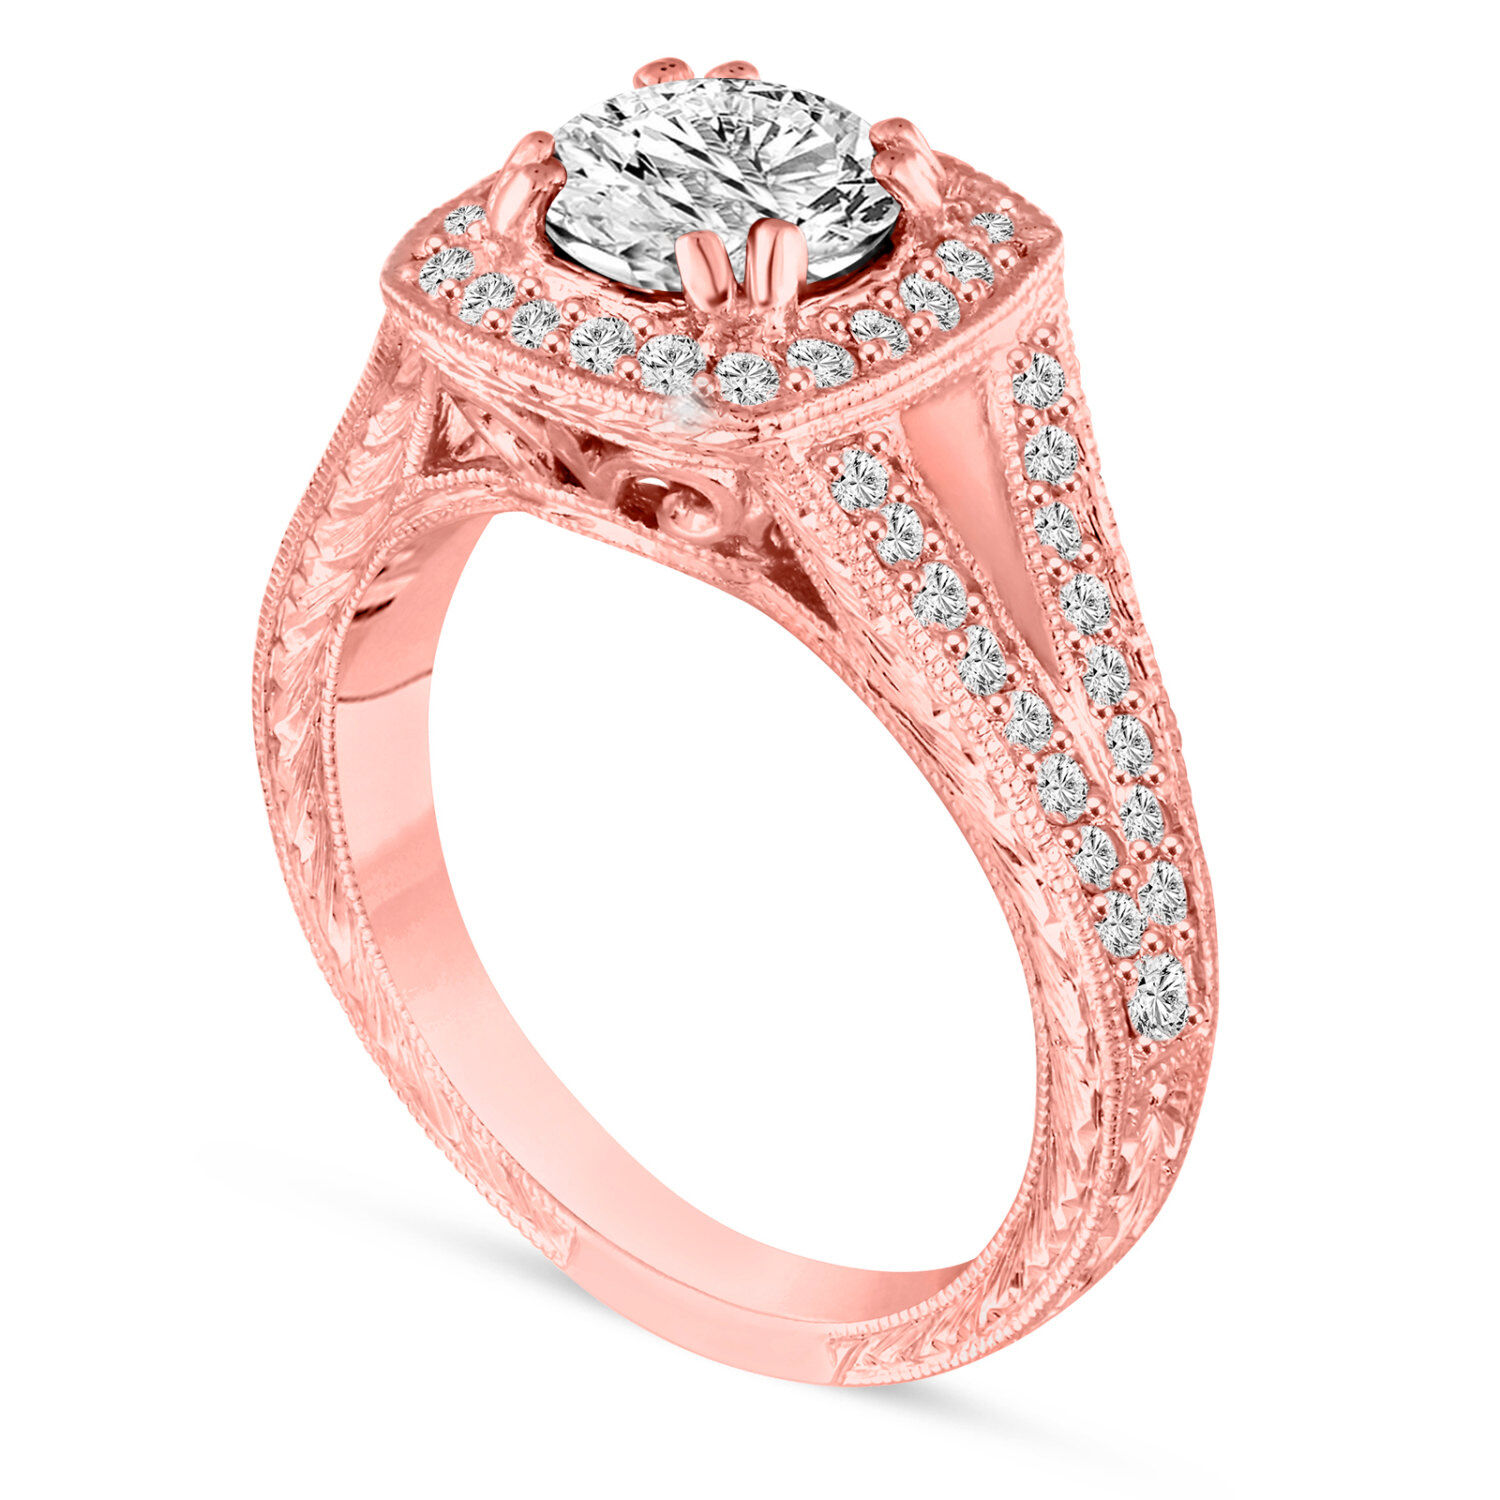 1.46 Carat Diamond Engagement Ring 14K Rose Gold GIA Certified Vintage Engraved